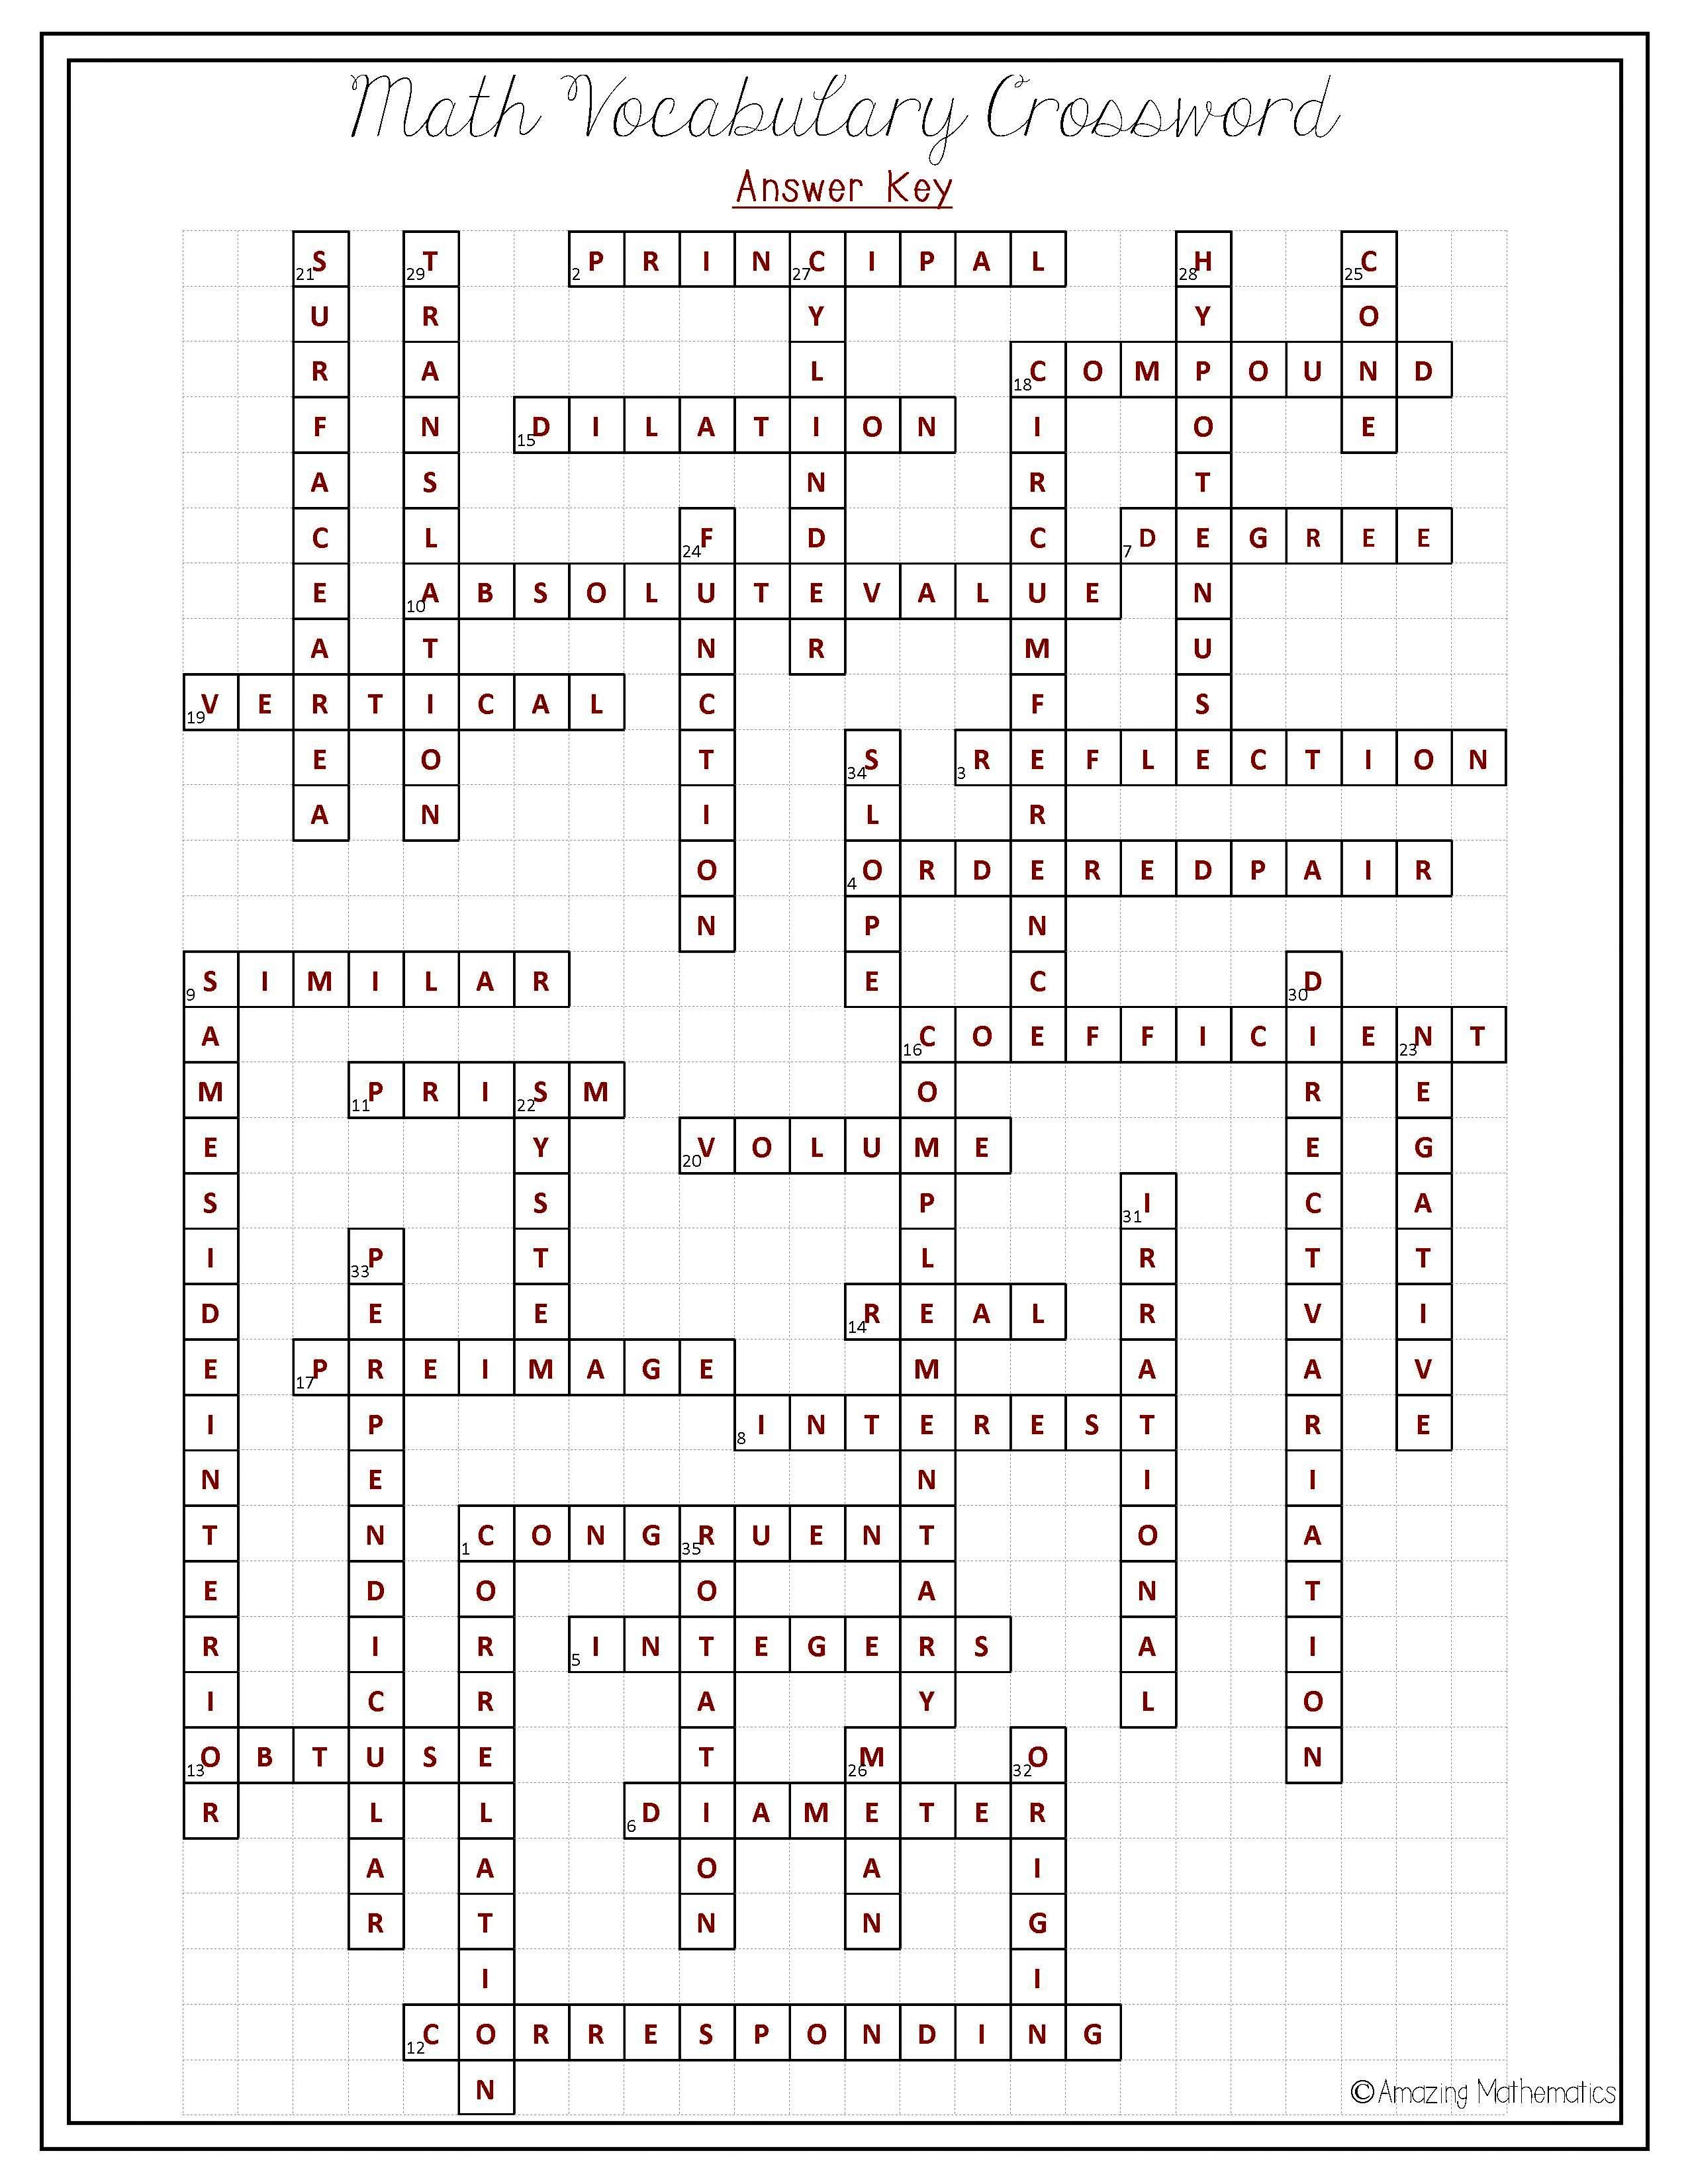 8Th Grade Math Vocabulary Crossword | Puzzles | Math Vocabulary, 8Th - Crossword Puzzles Printable 8Th Grade